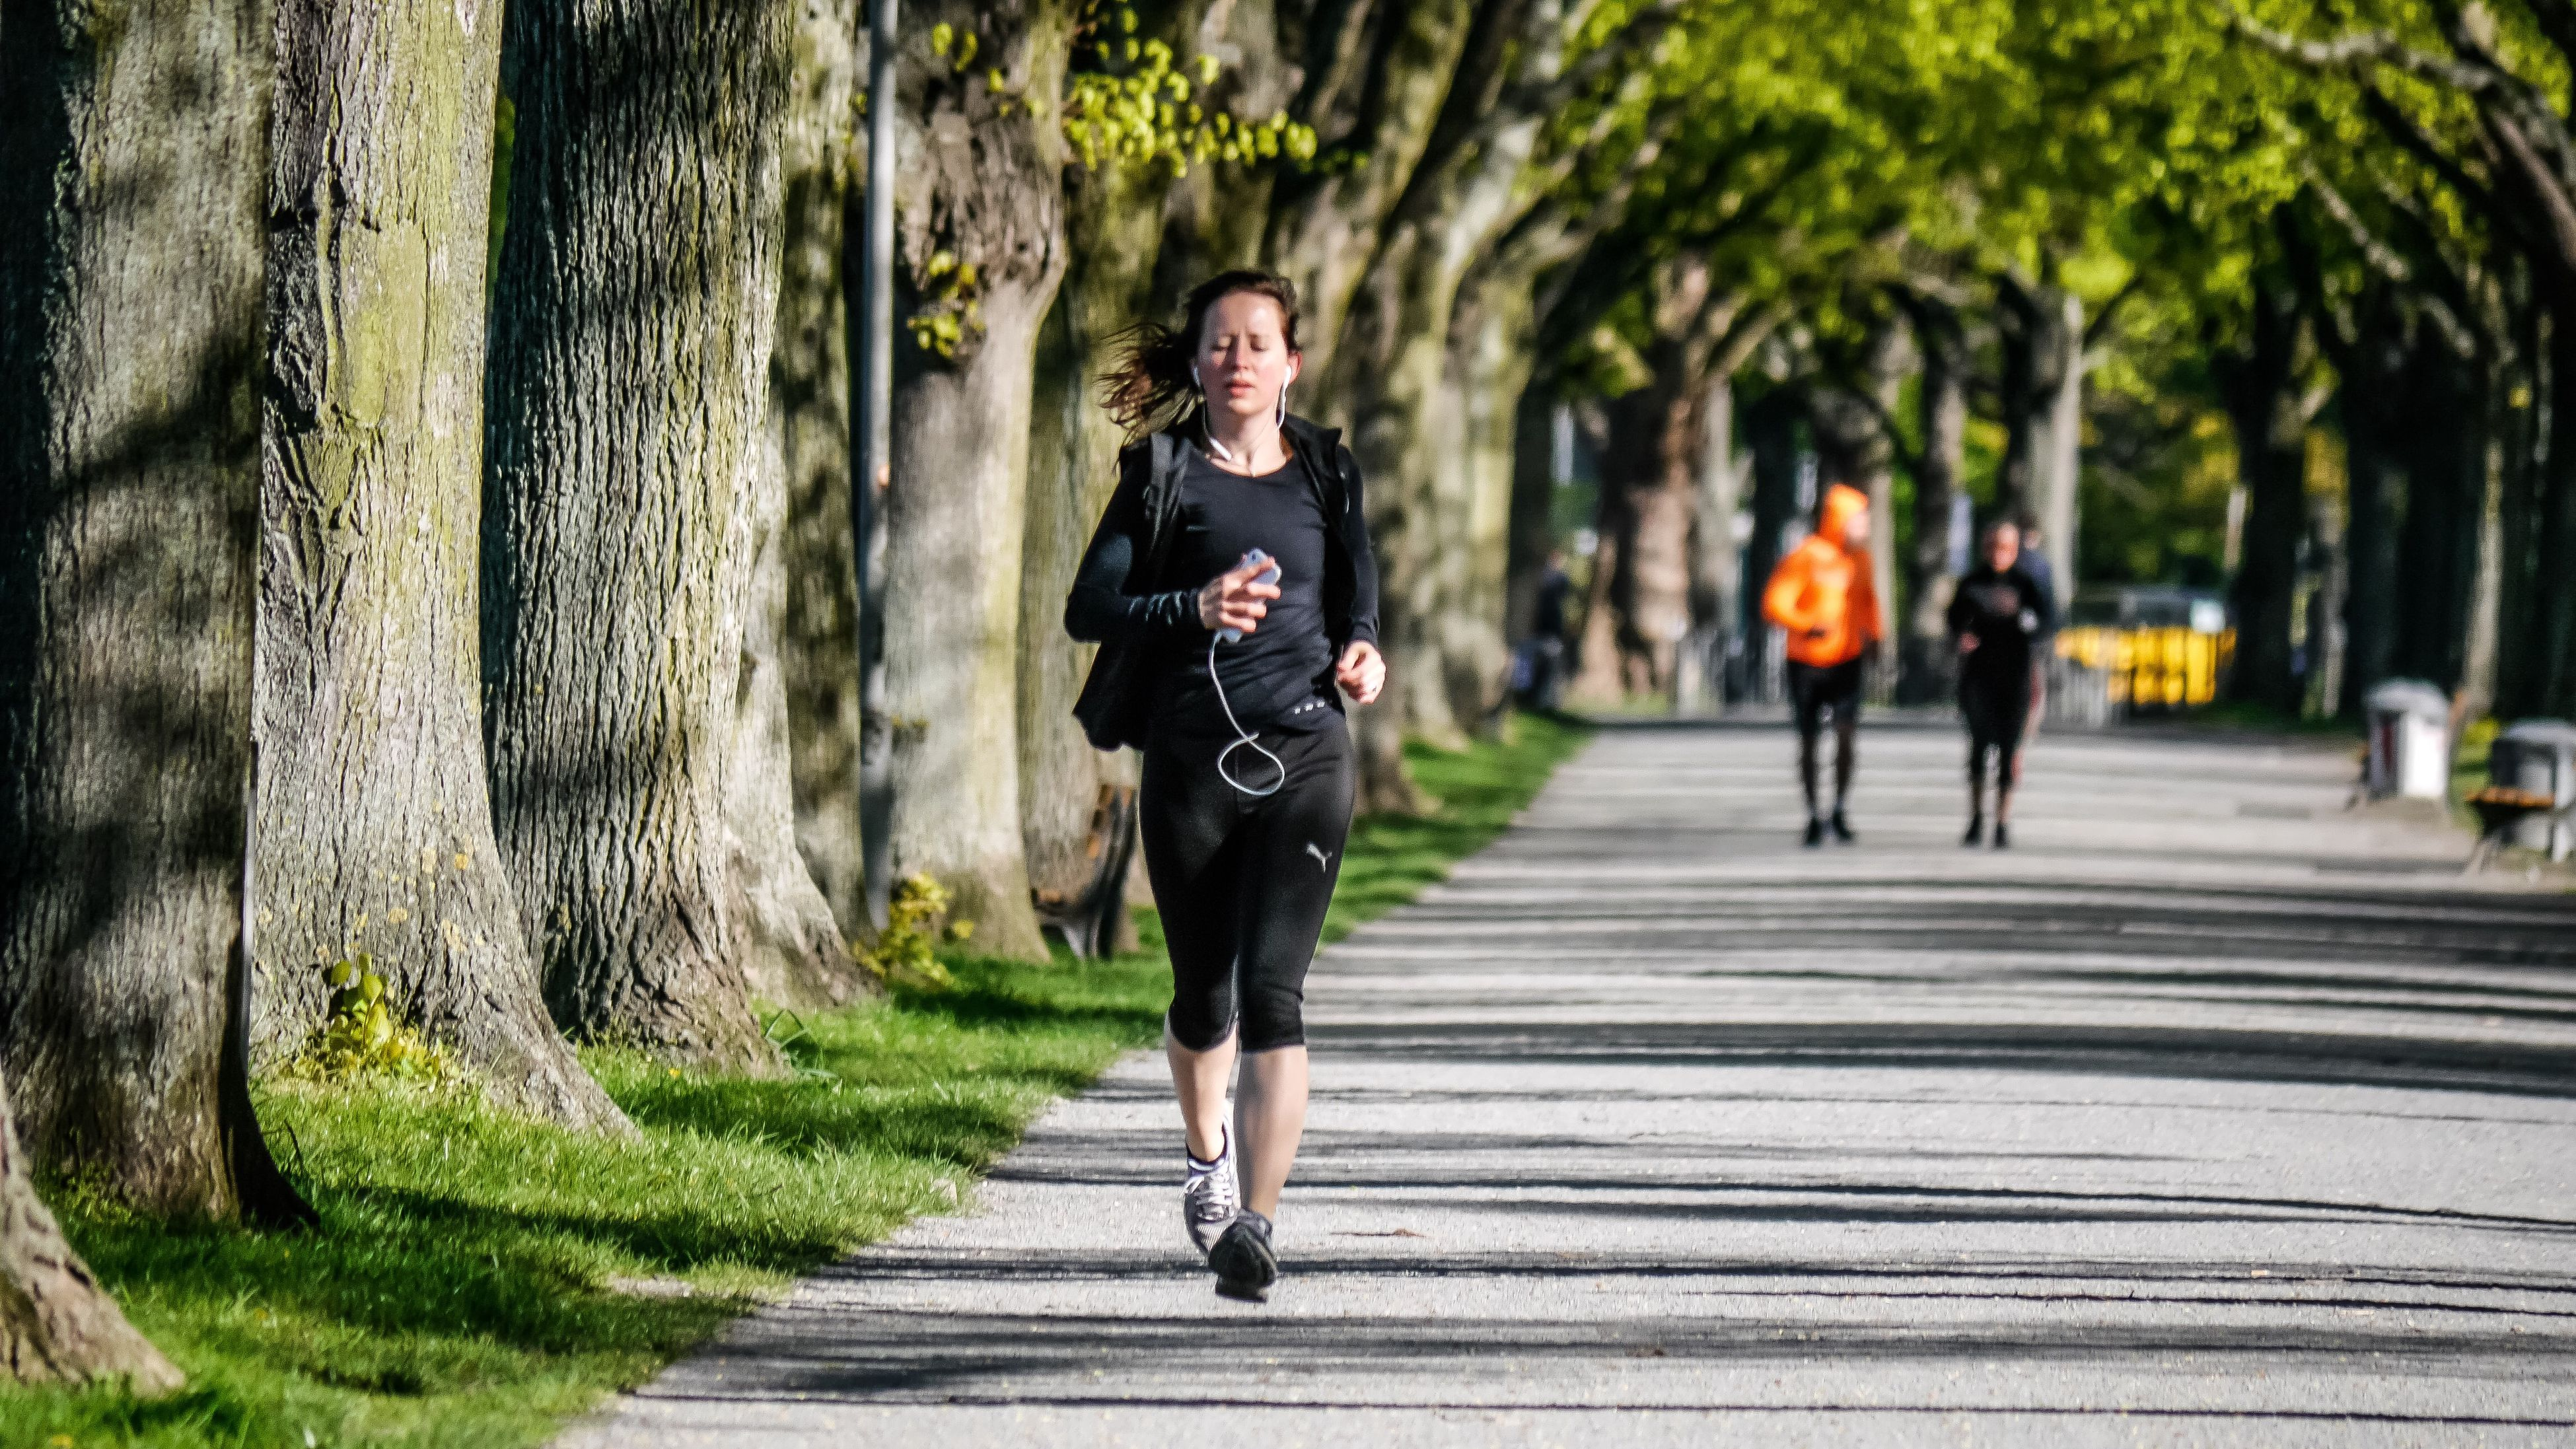 jogging, running, full length, exercising, lifestyles, sports clothing, outdoors, real people, sport, day, women, healthy lifestyle, leisure activity, one person, young women, only women, tree, adults only, young adult, people, adult, blond hair, marathon, athlete, nature